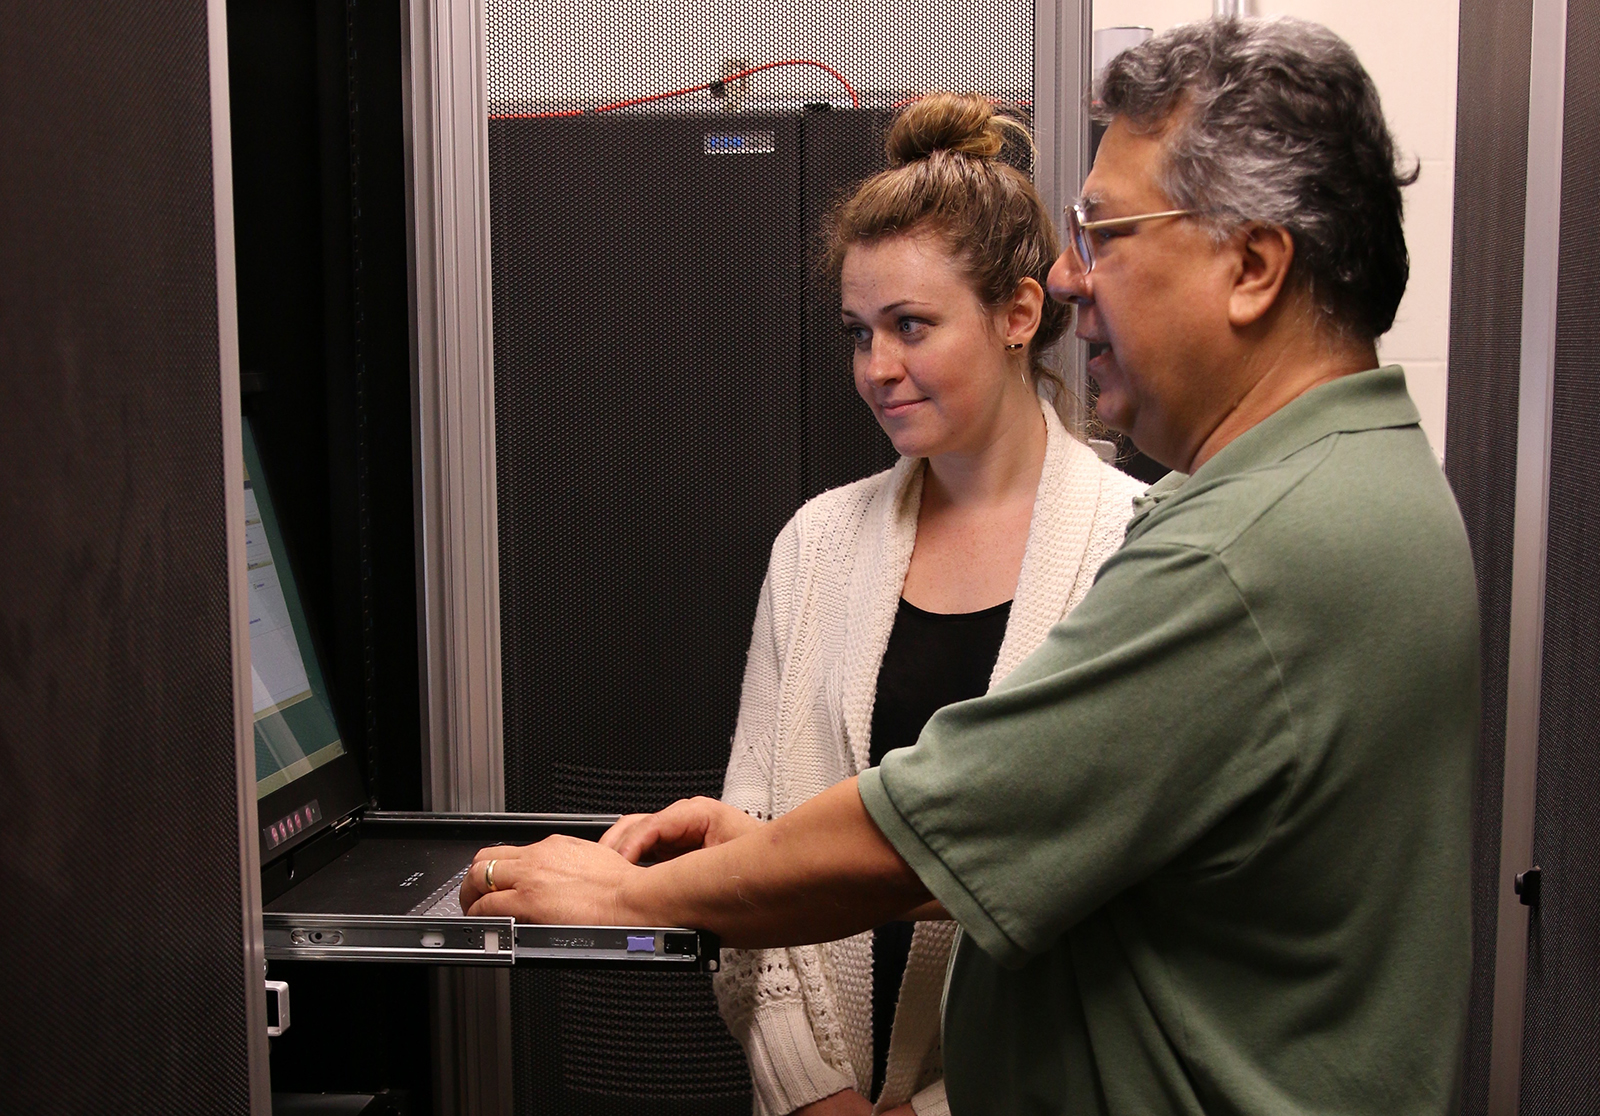 A student and instructor standing at a server keyboard.